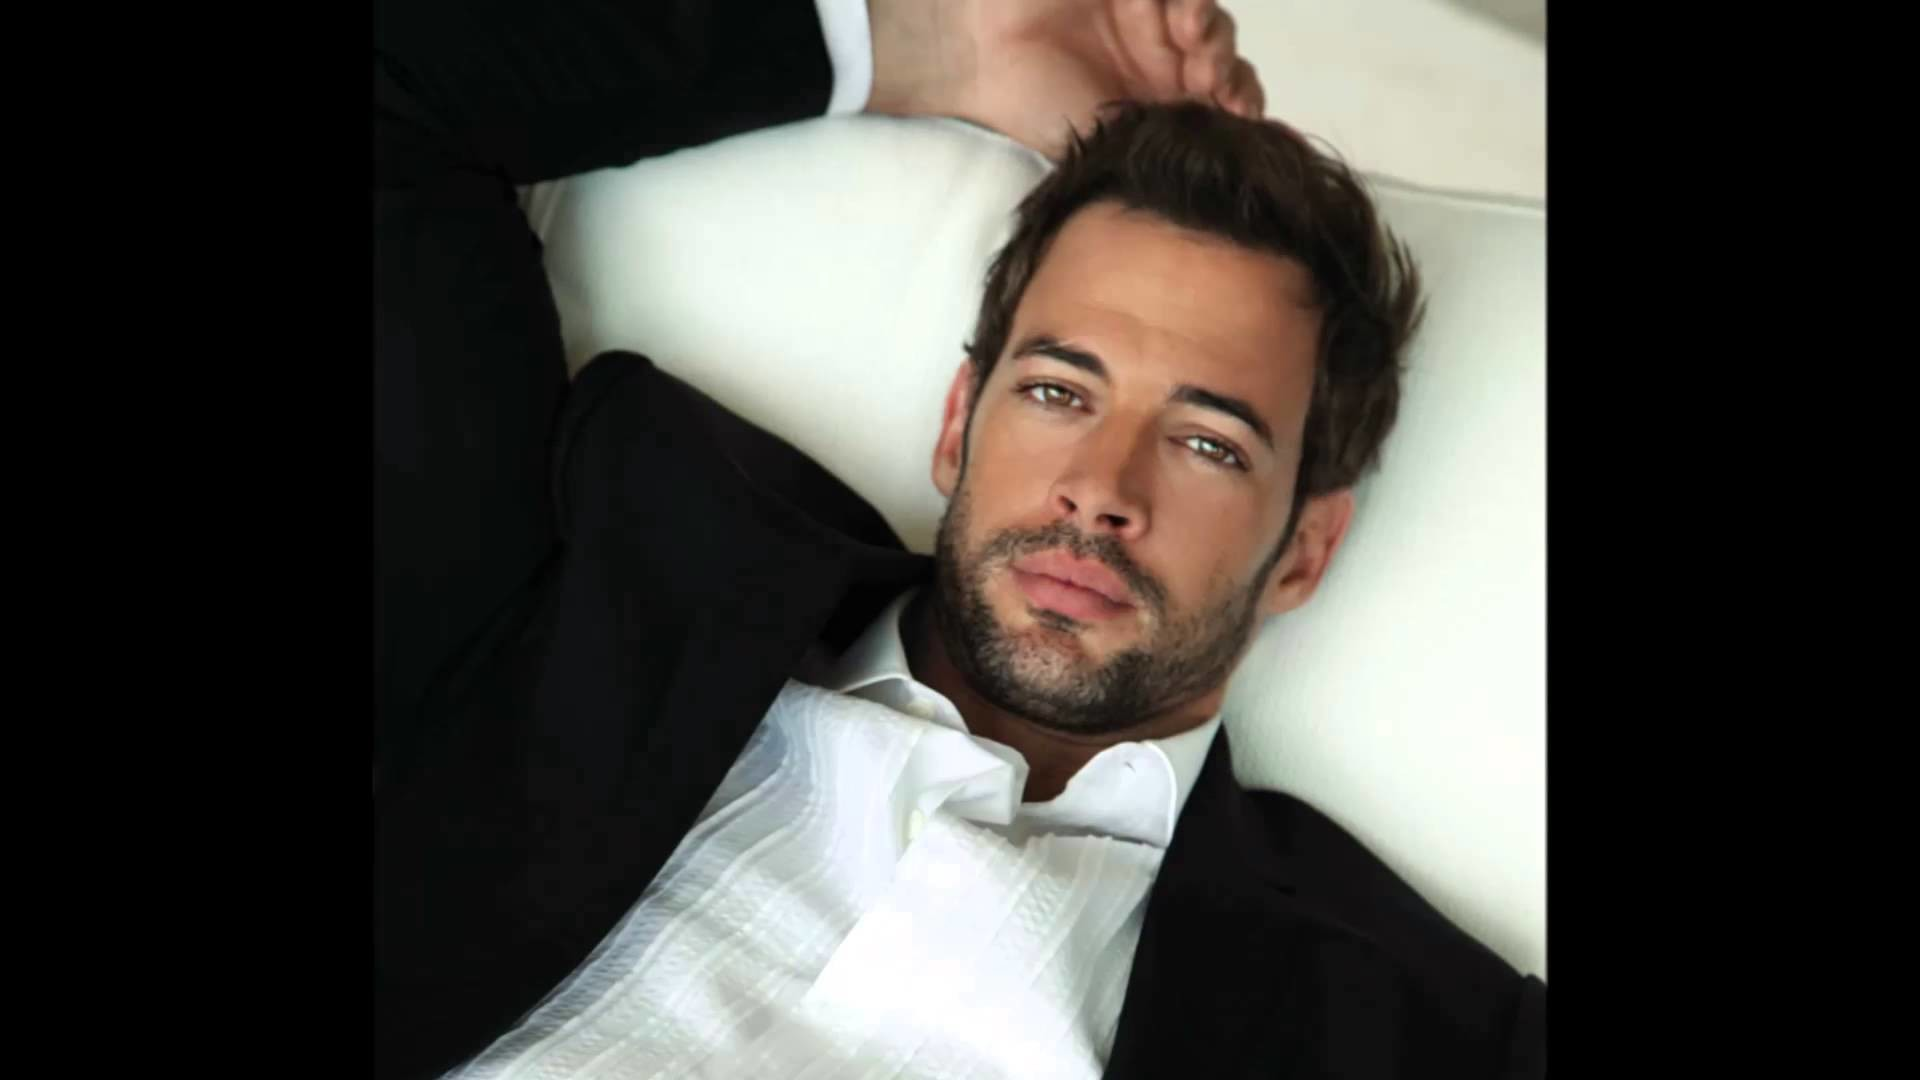 e5696aeebe7 Fotos william levy en traje de bao